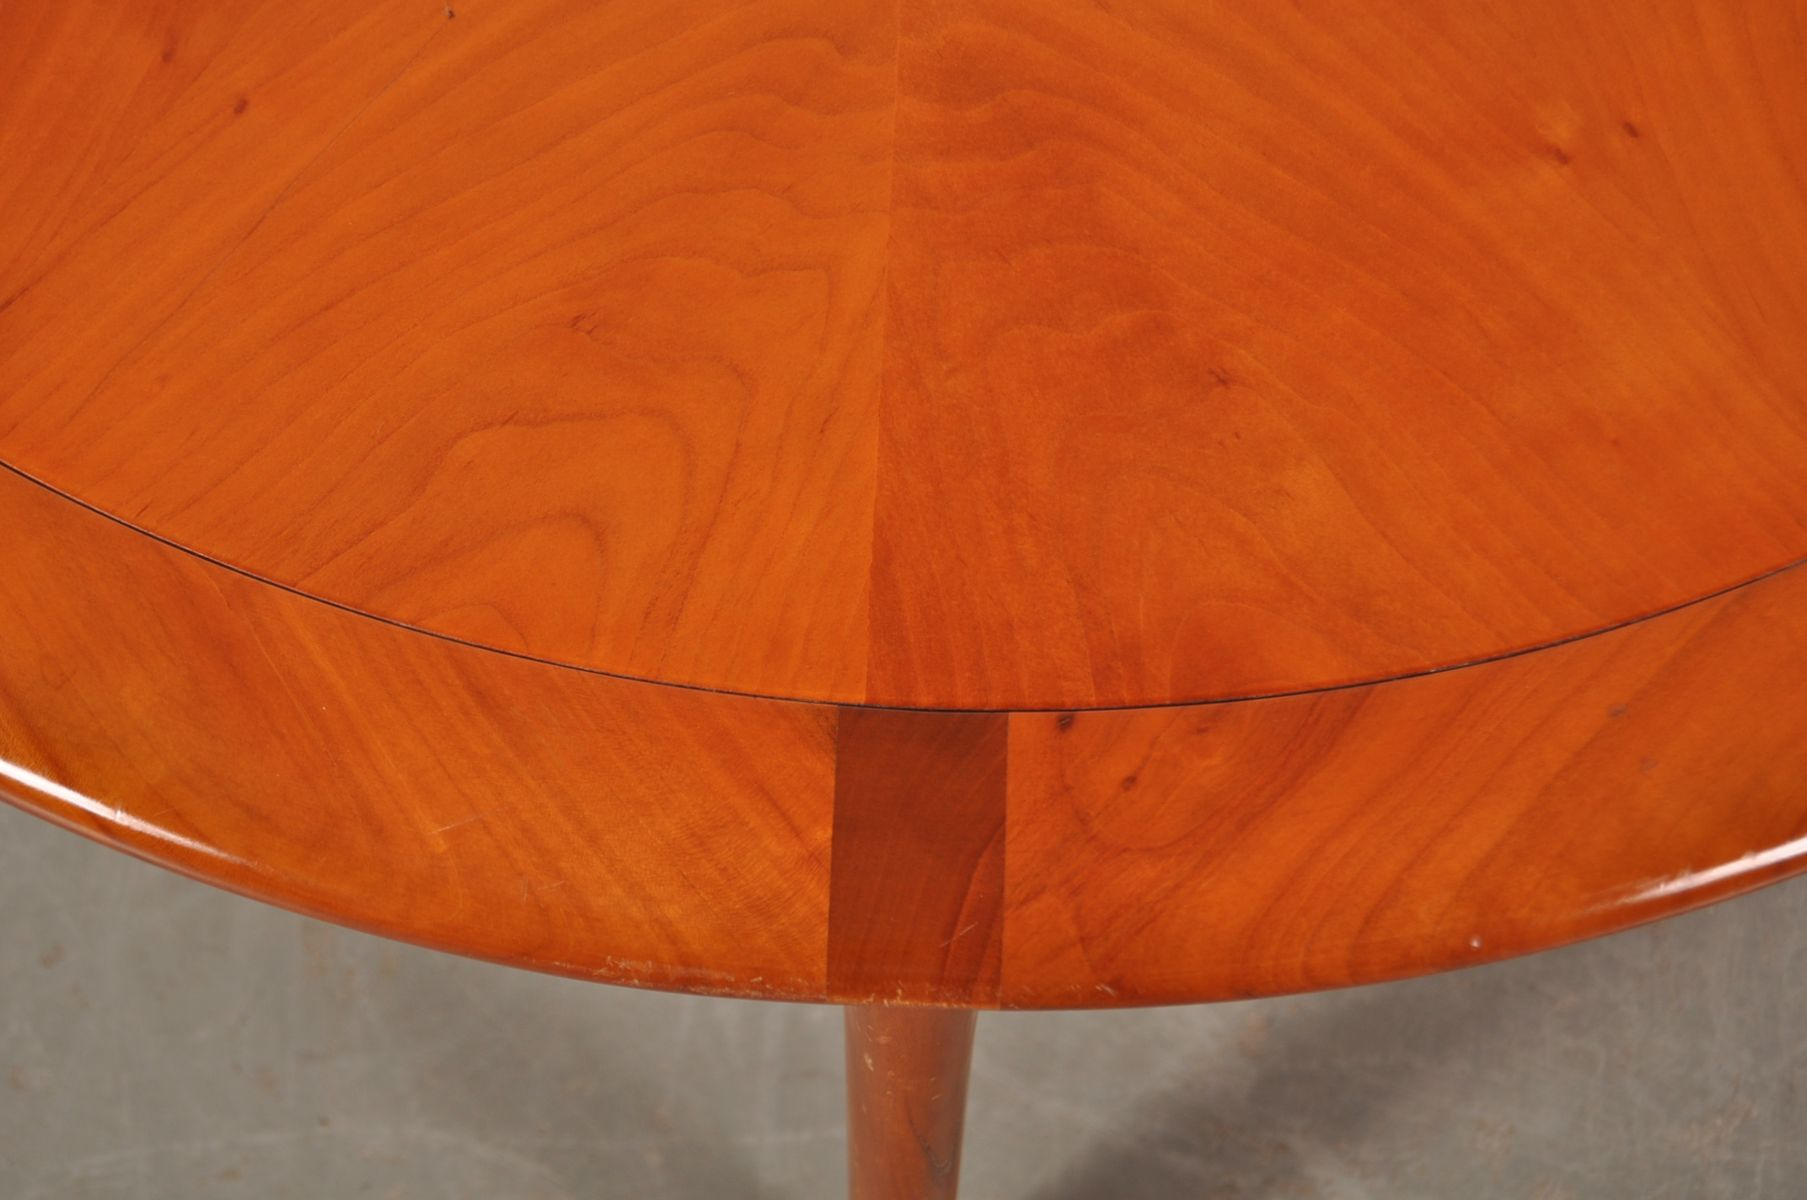 Round Wooden Coffee Table from Walter Knoll 1960s for sale at Pamono